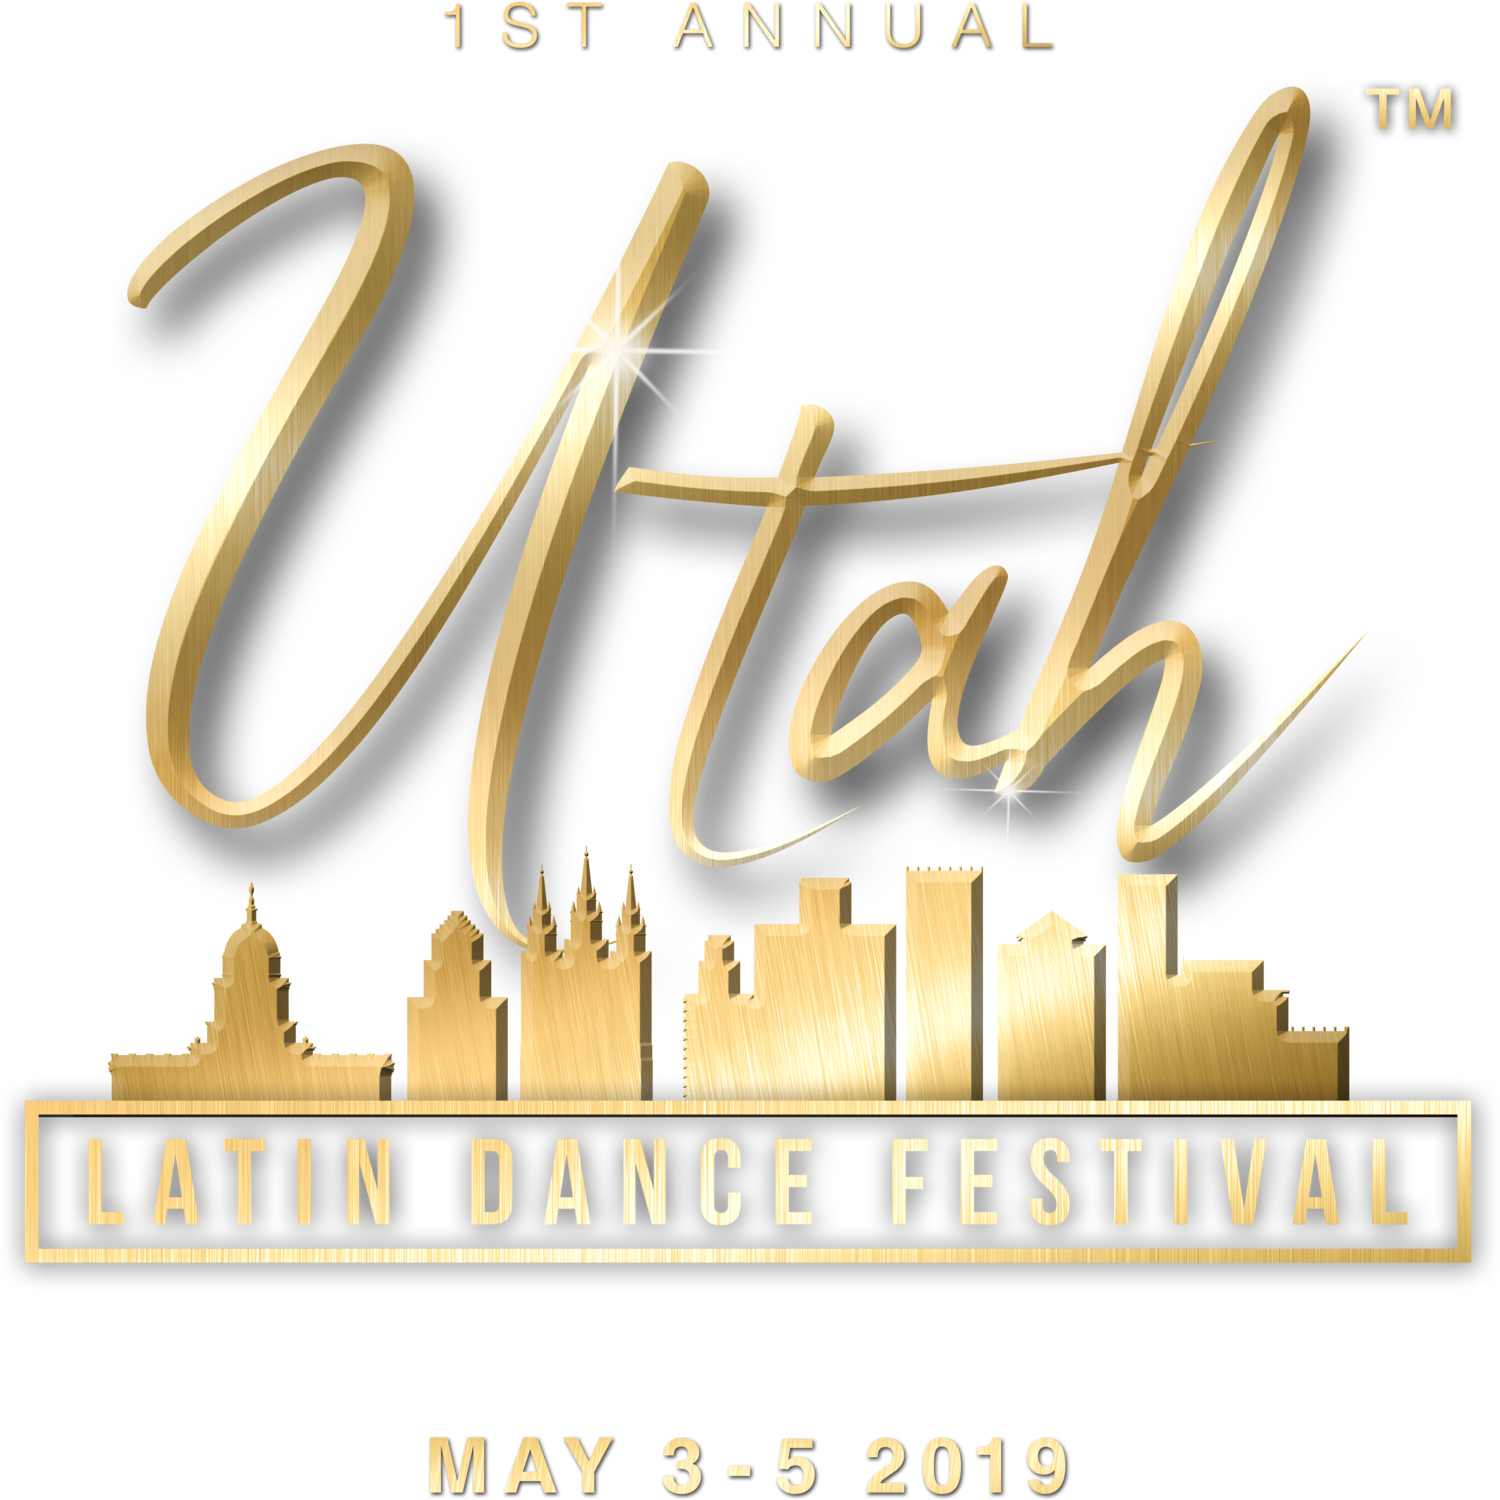 1st Annual Utah Latin Dance Festival May 3rd-5th 2019